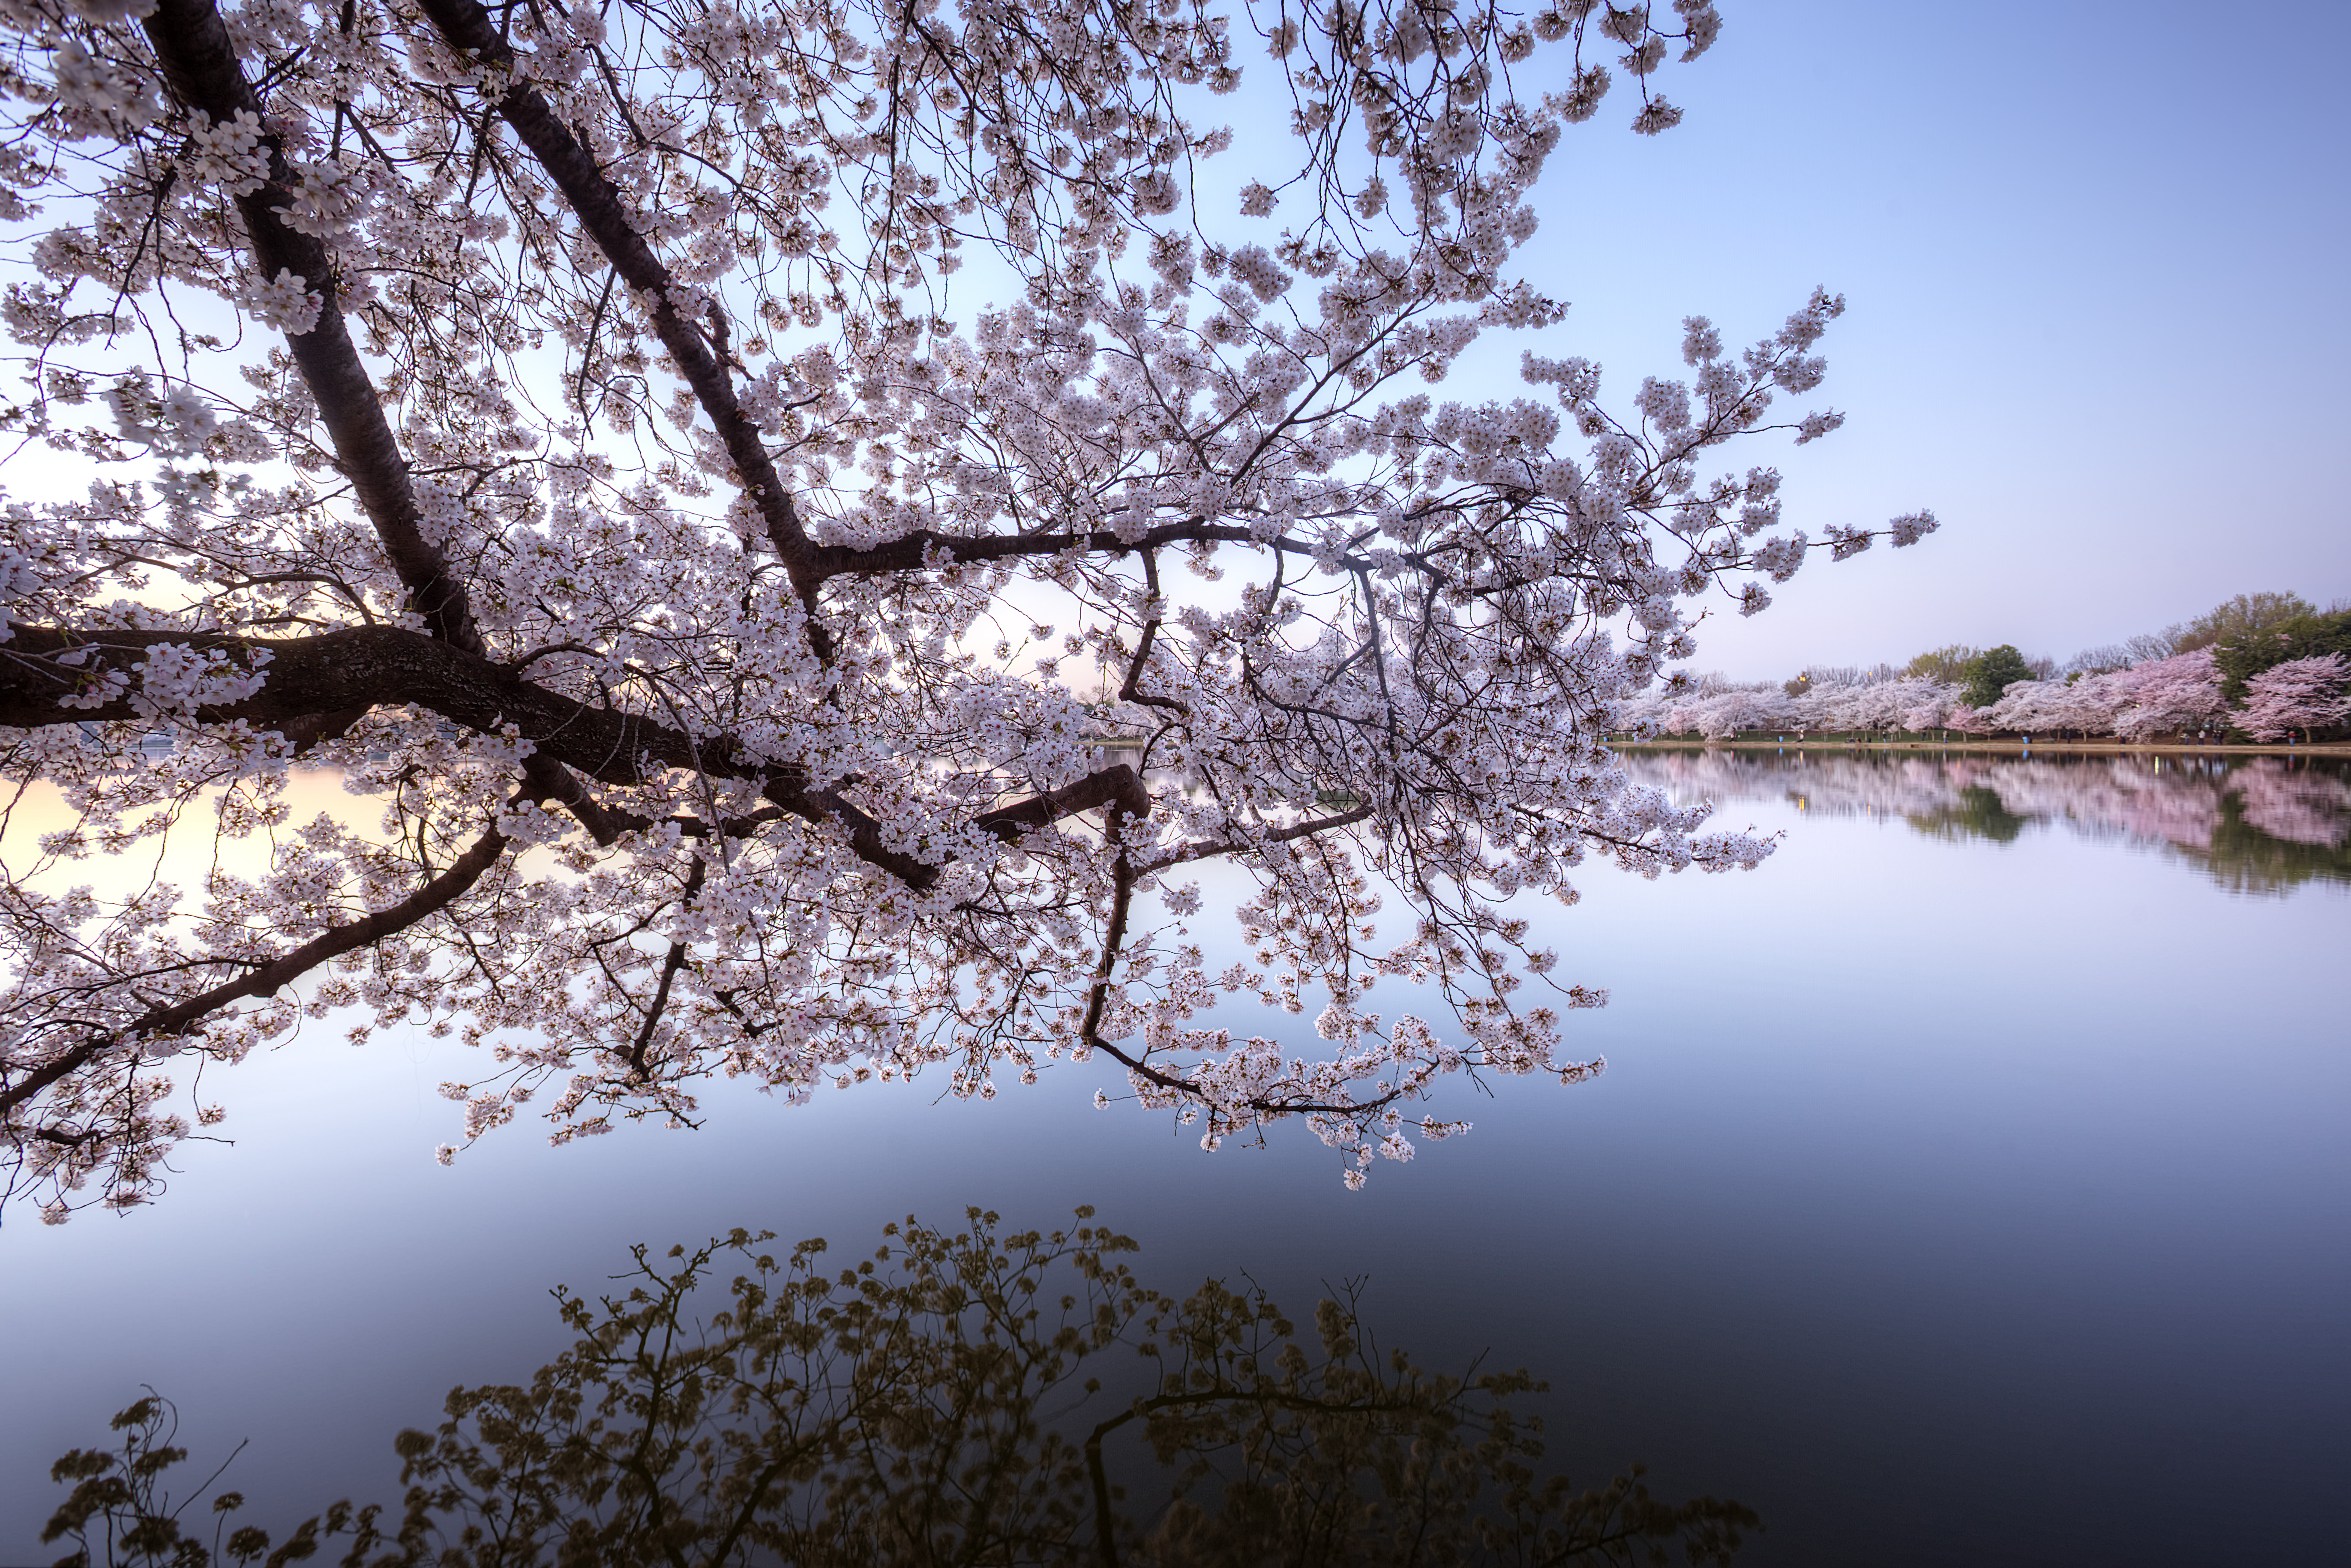 cherry blossoms, branch, early morning, tidal basin, trees, sakura, washington dc, sunrise, reflection,